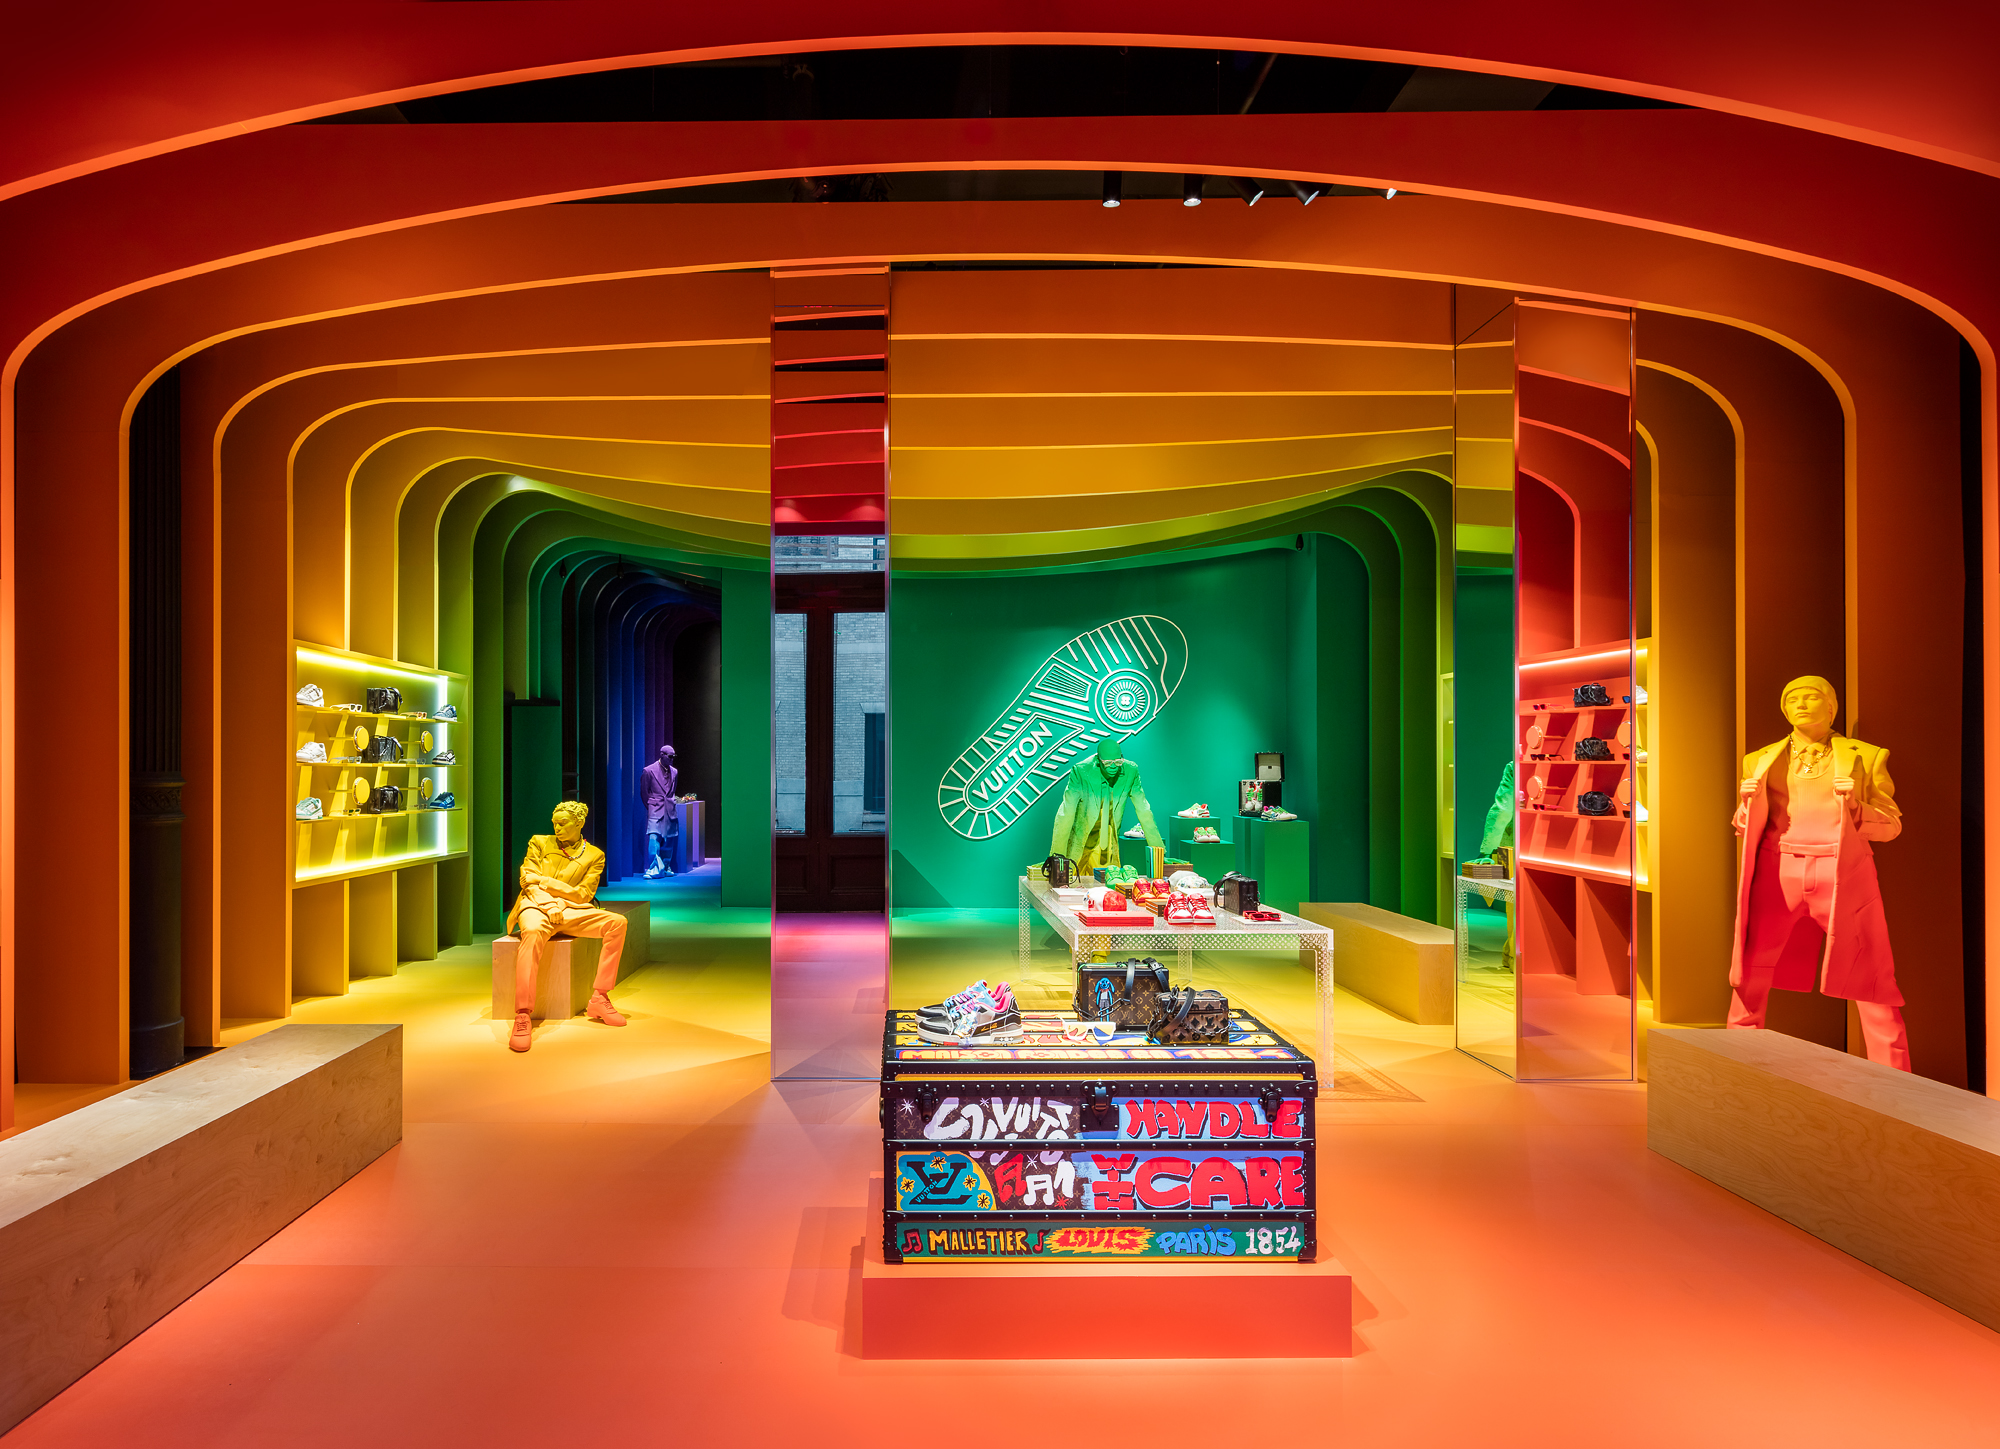 Louis Vuitton Walk in the Park temporary residence interior